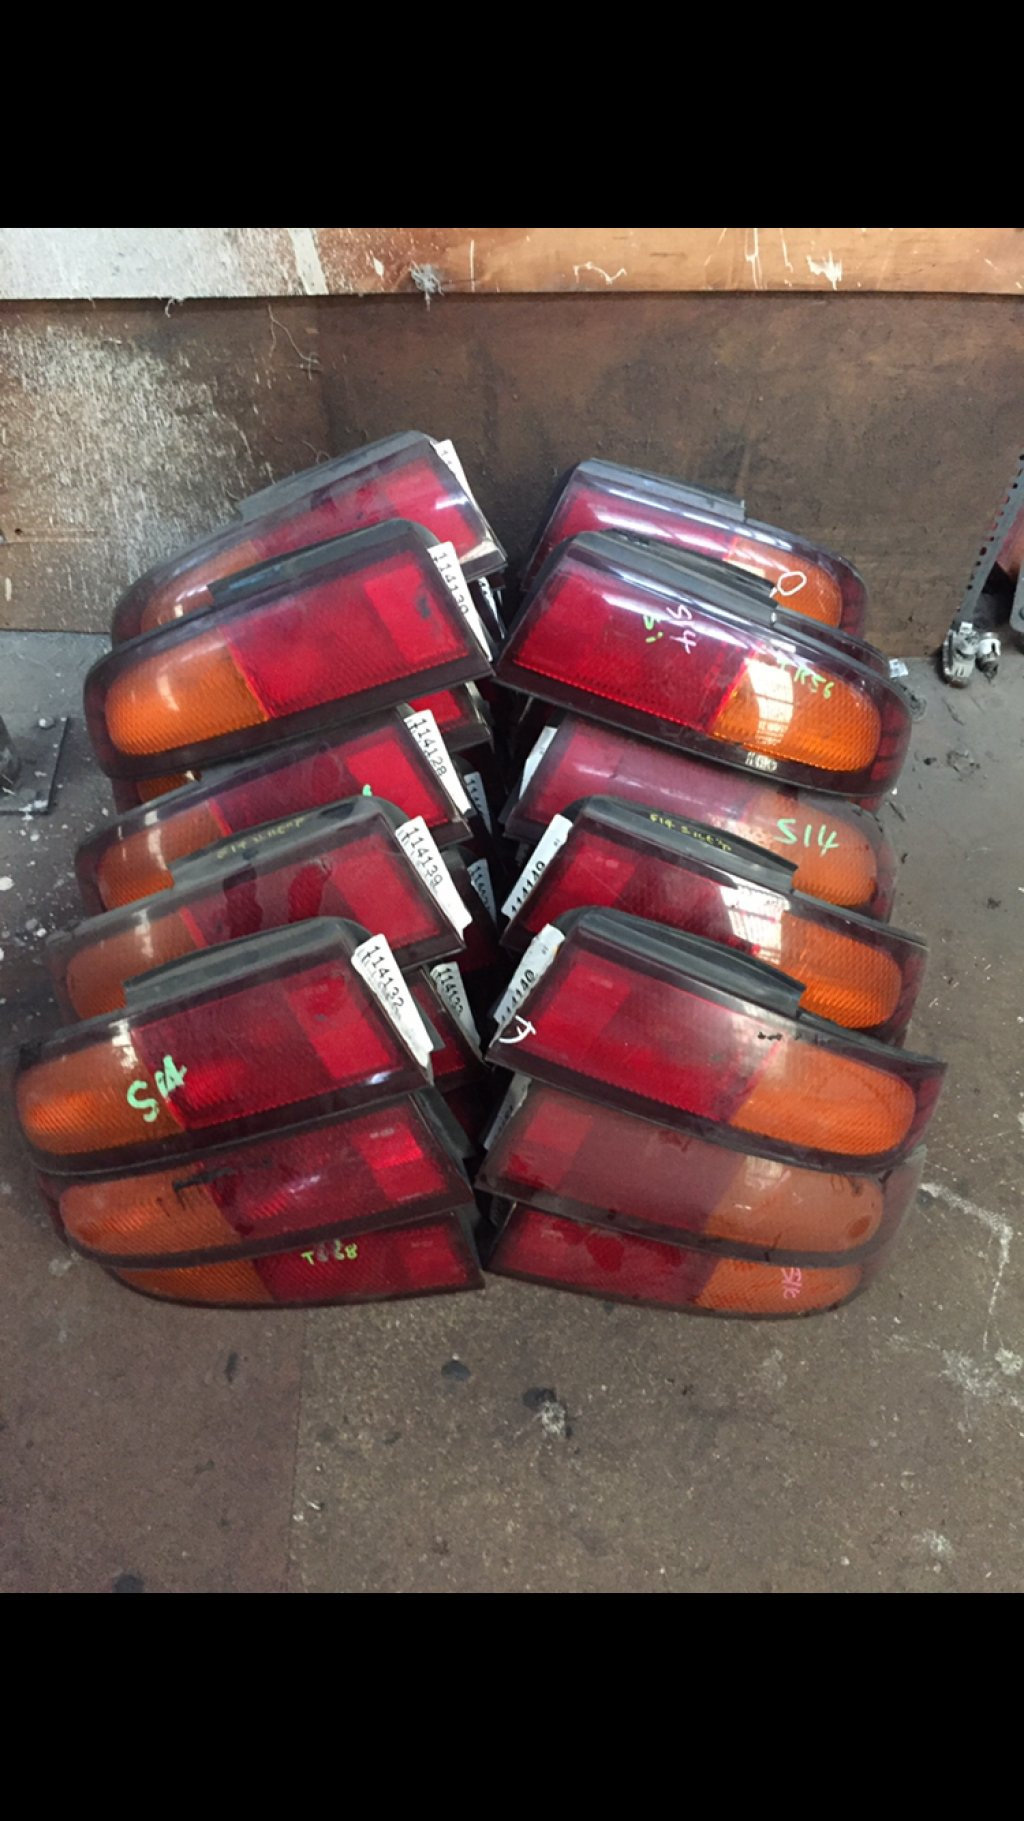 Clearing Out Series 1 S14 Tail Lights